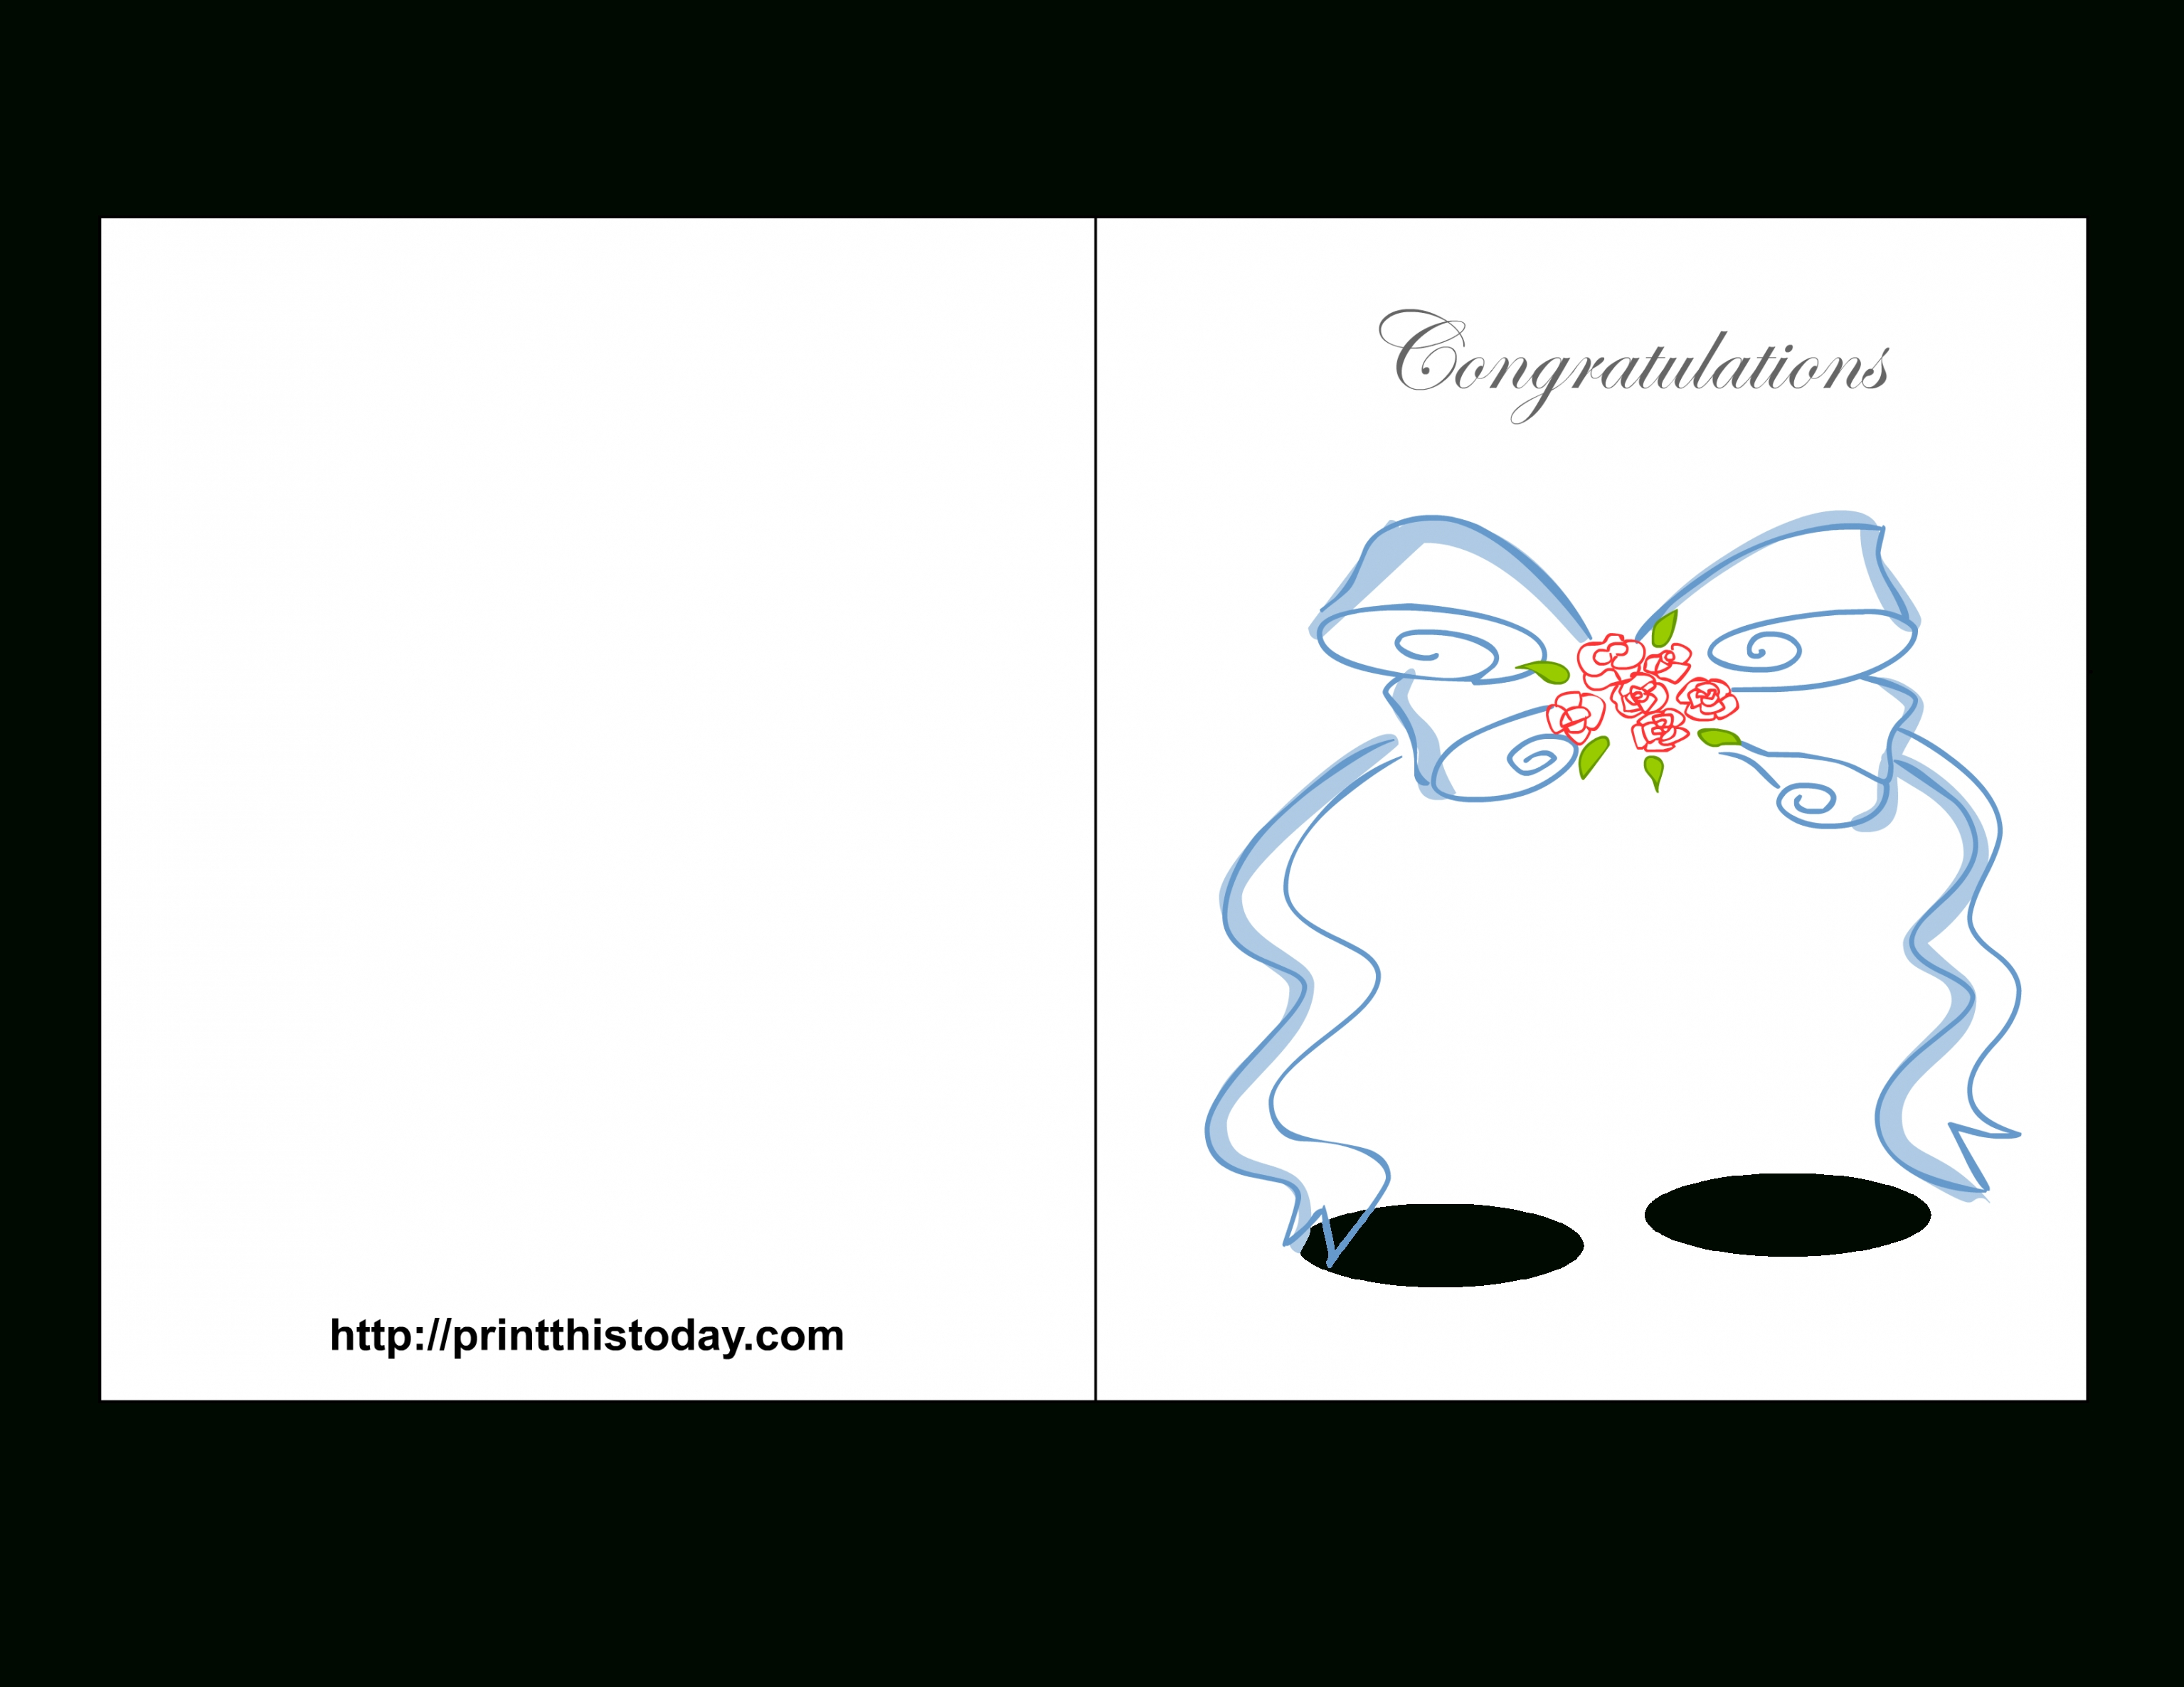 Free Png Wedding Congratulations & Free Wedding Congratulations - Free Printable Wedding Congratulations Greeting Cards